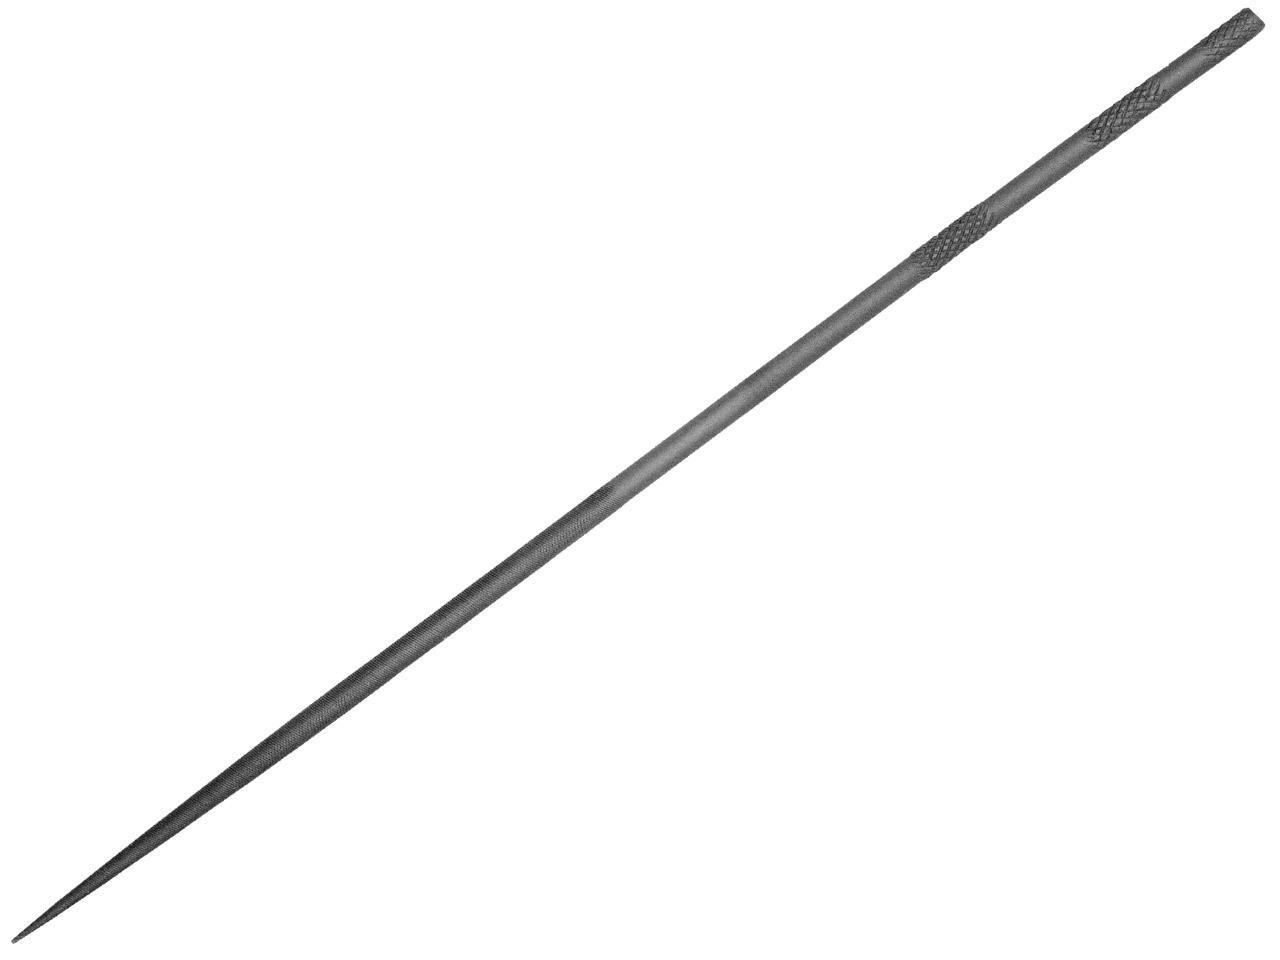 Cooksongold 16cm Needle File Round, Cut 0